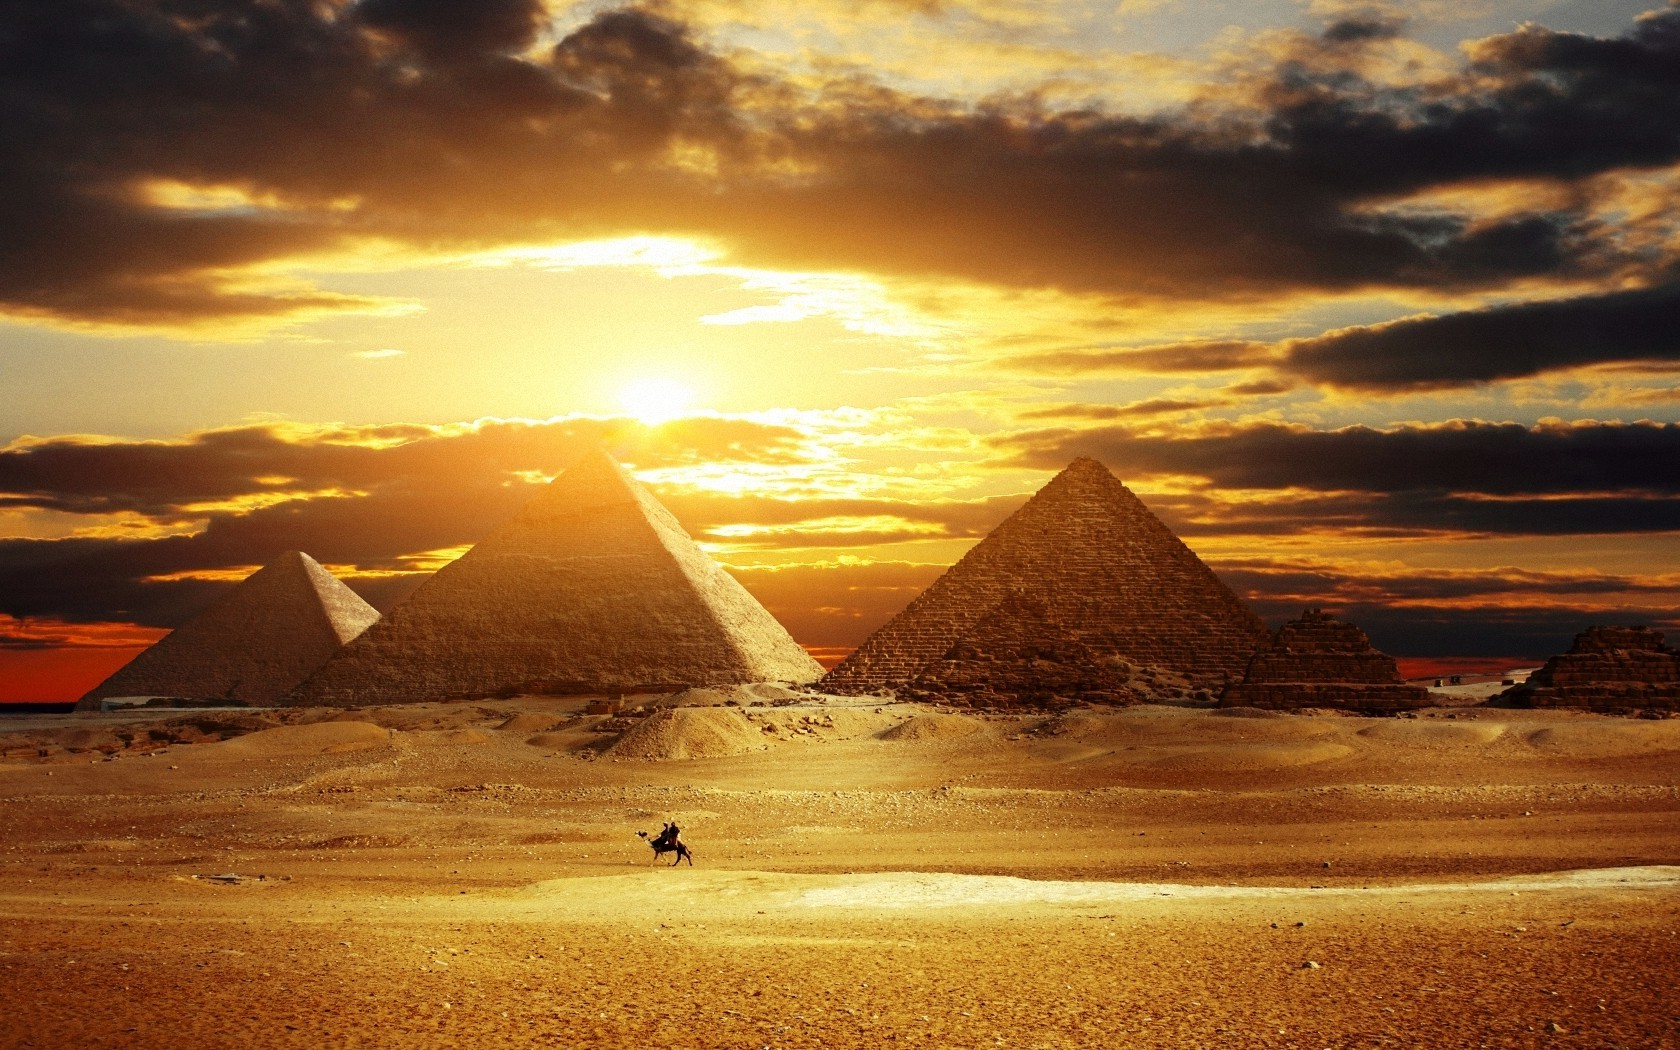 Egypt Pyramids Hd Wallpapers Pyramid Sunset Wallpapers Hd Desktop And Mobile Backgrounds